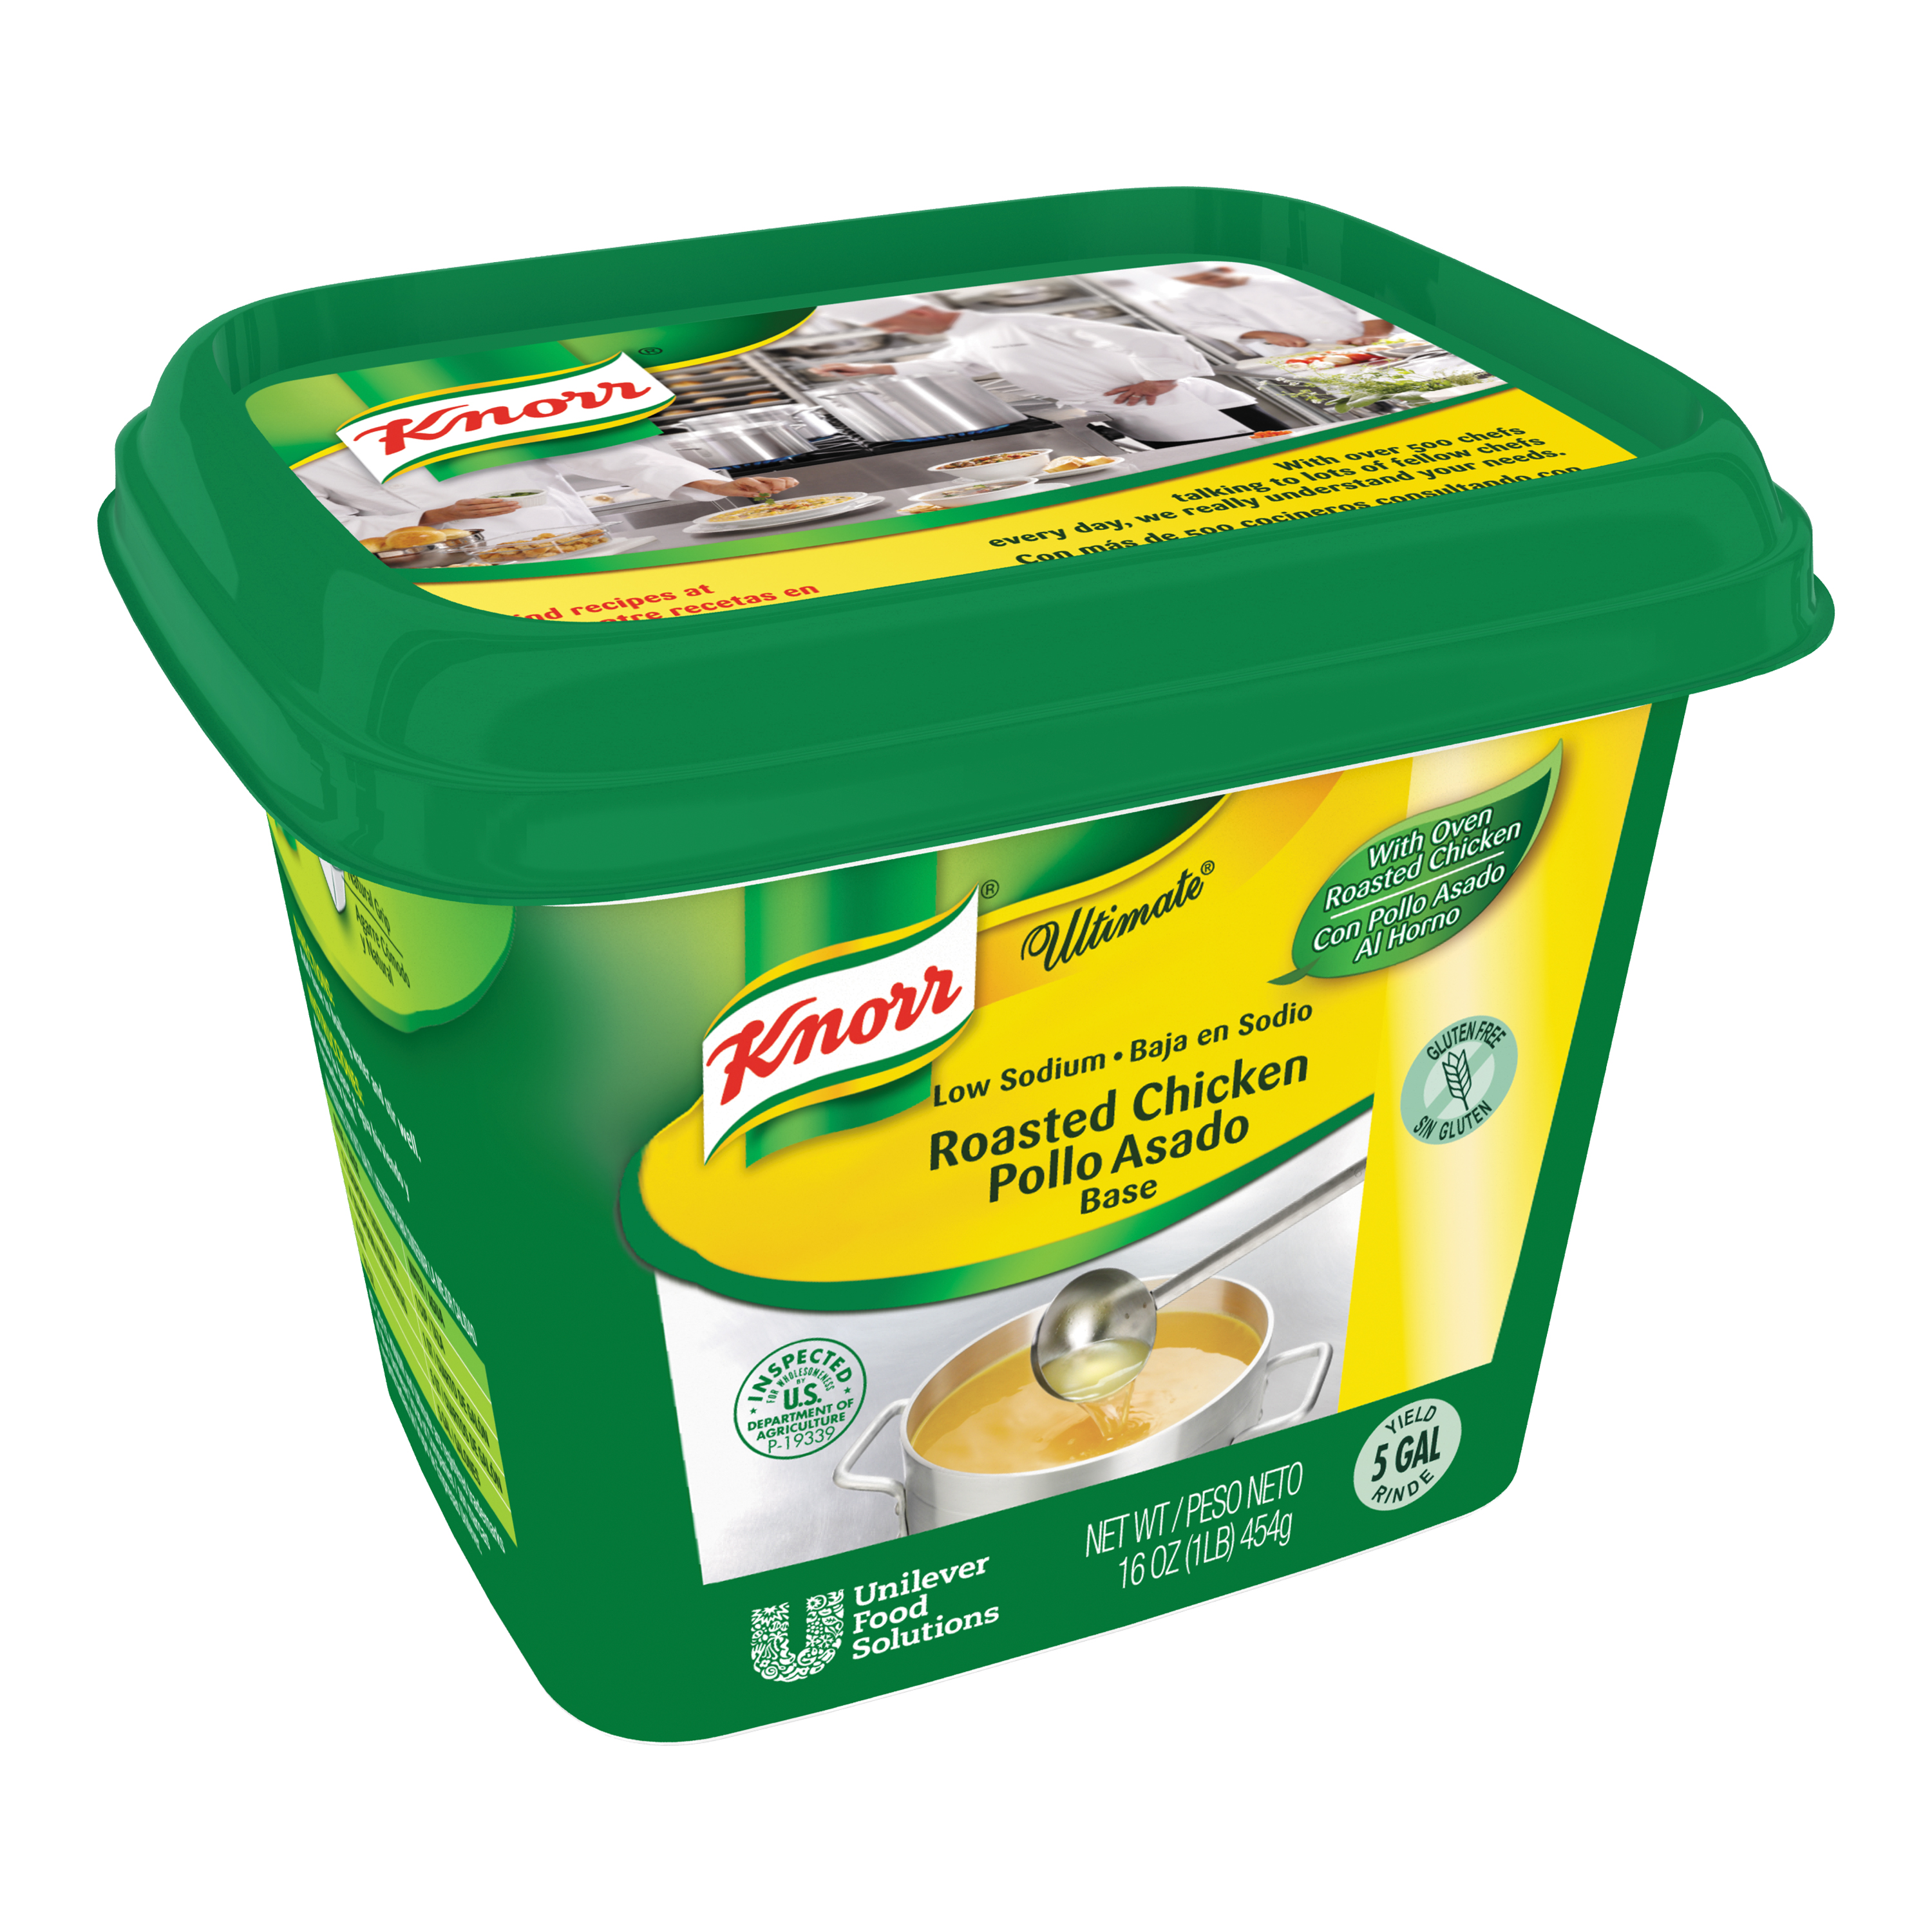 Knorr® Ultimate Chicken Low Sodium, Gluten Free - 10048001507422 - Excess salt in bases masks the true flavor of soups.